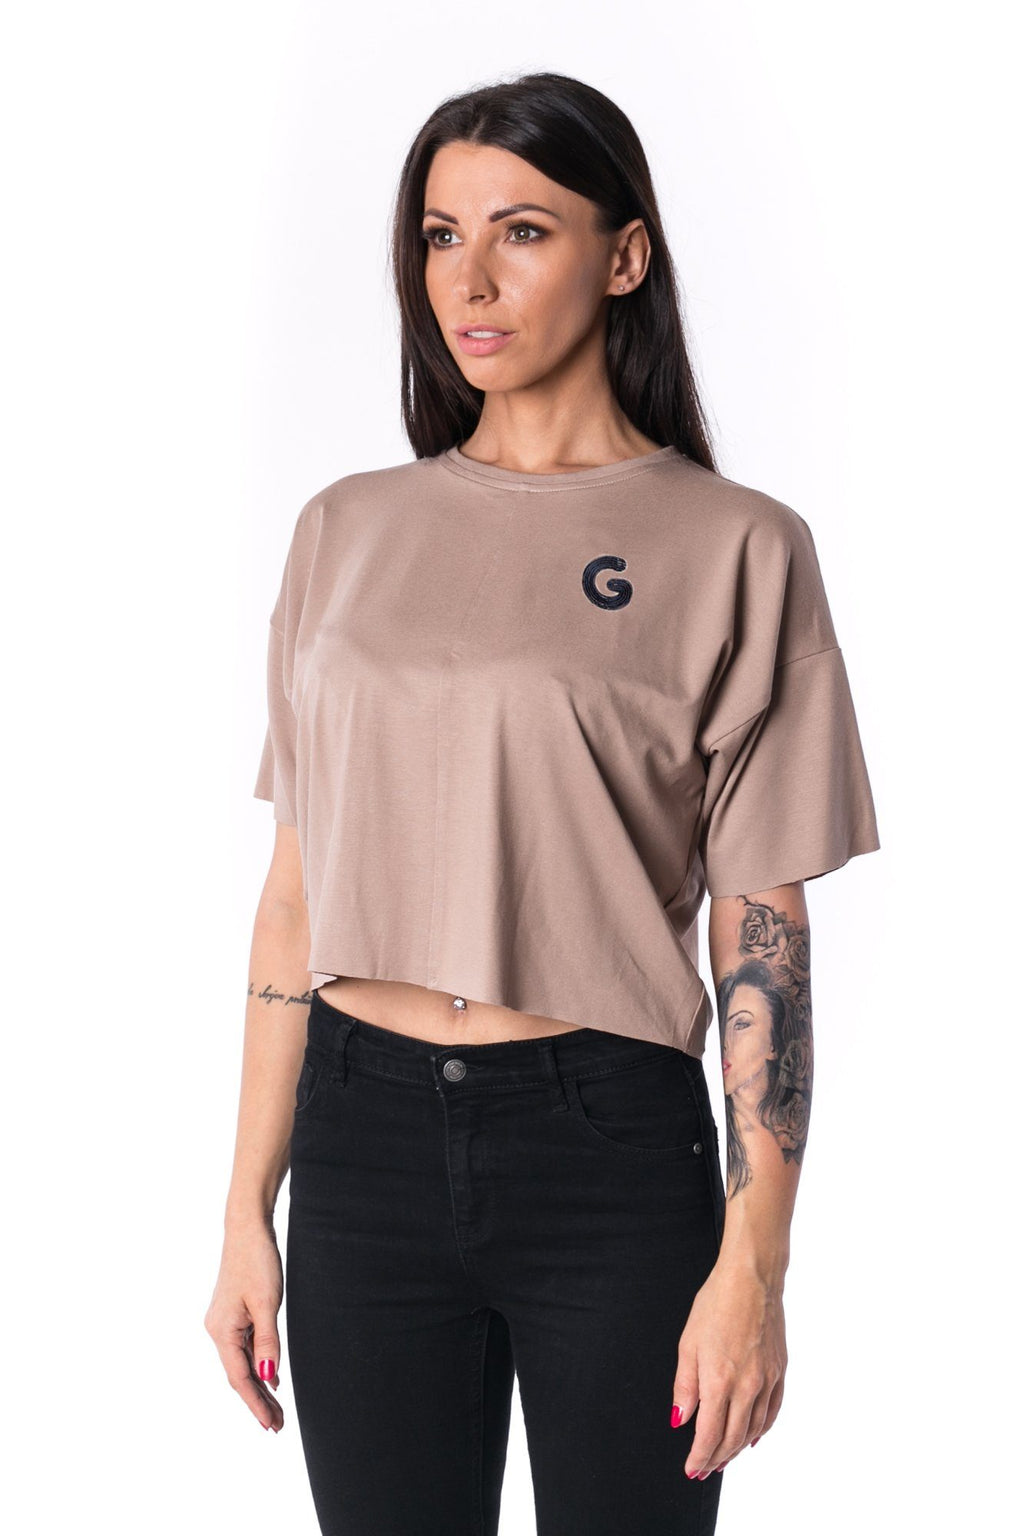 TheG Woman Panelled Oversize Crop Tee 17 // mocca